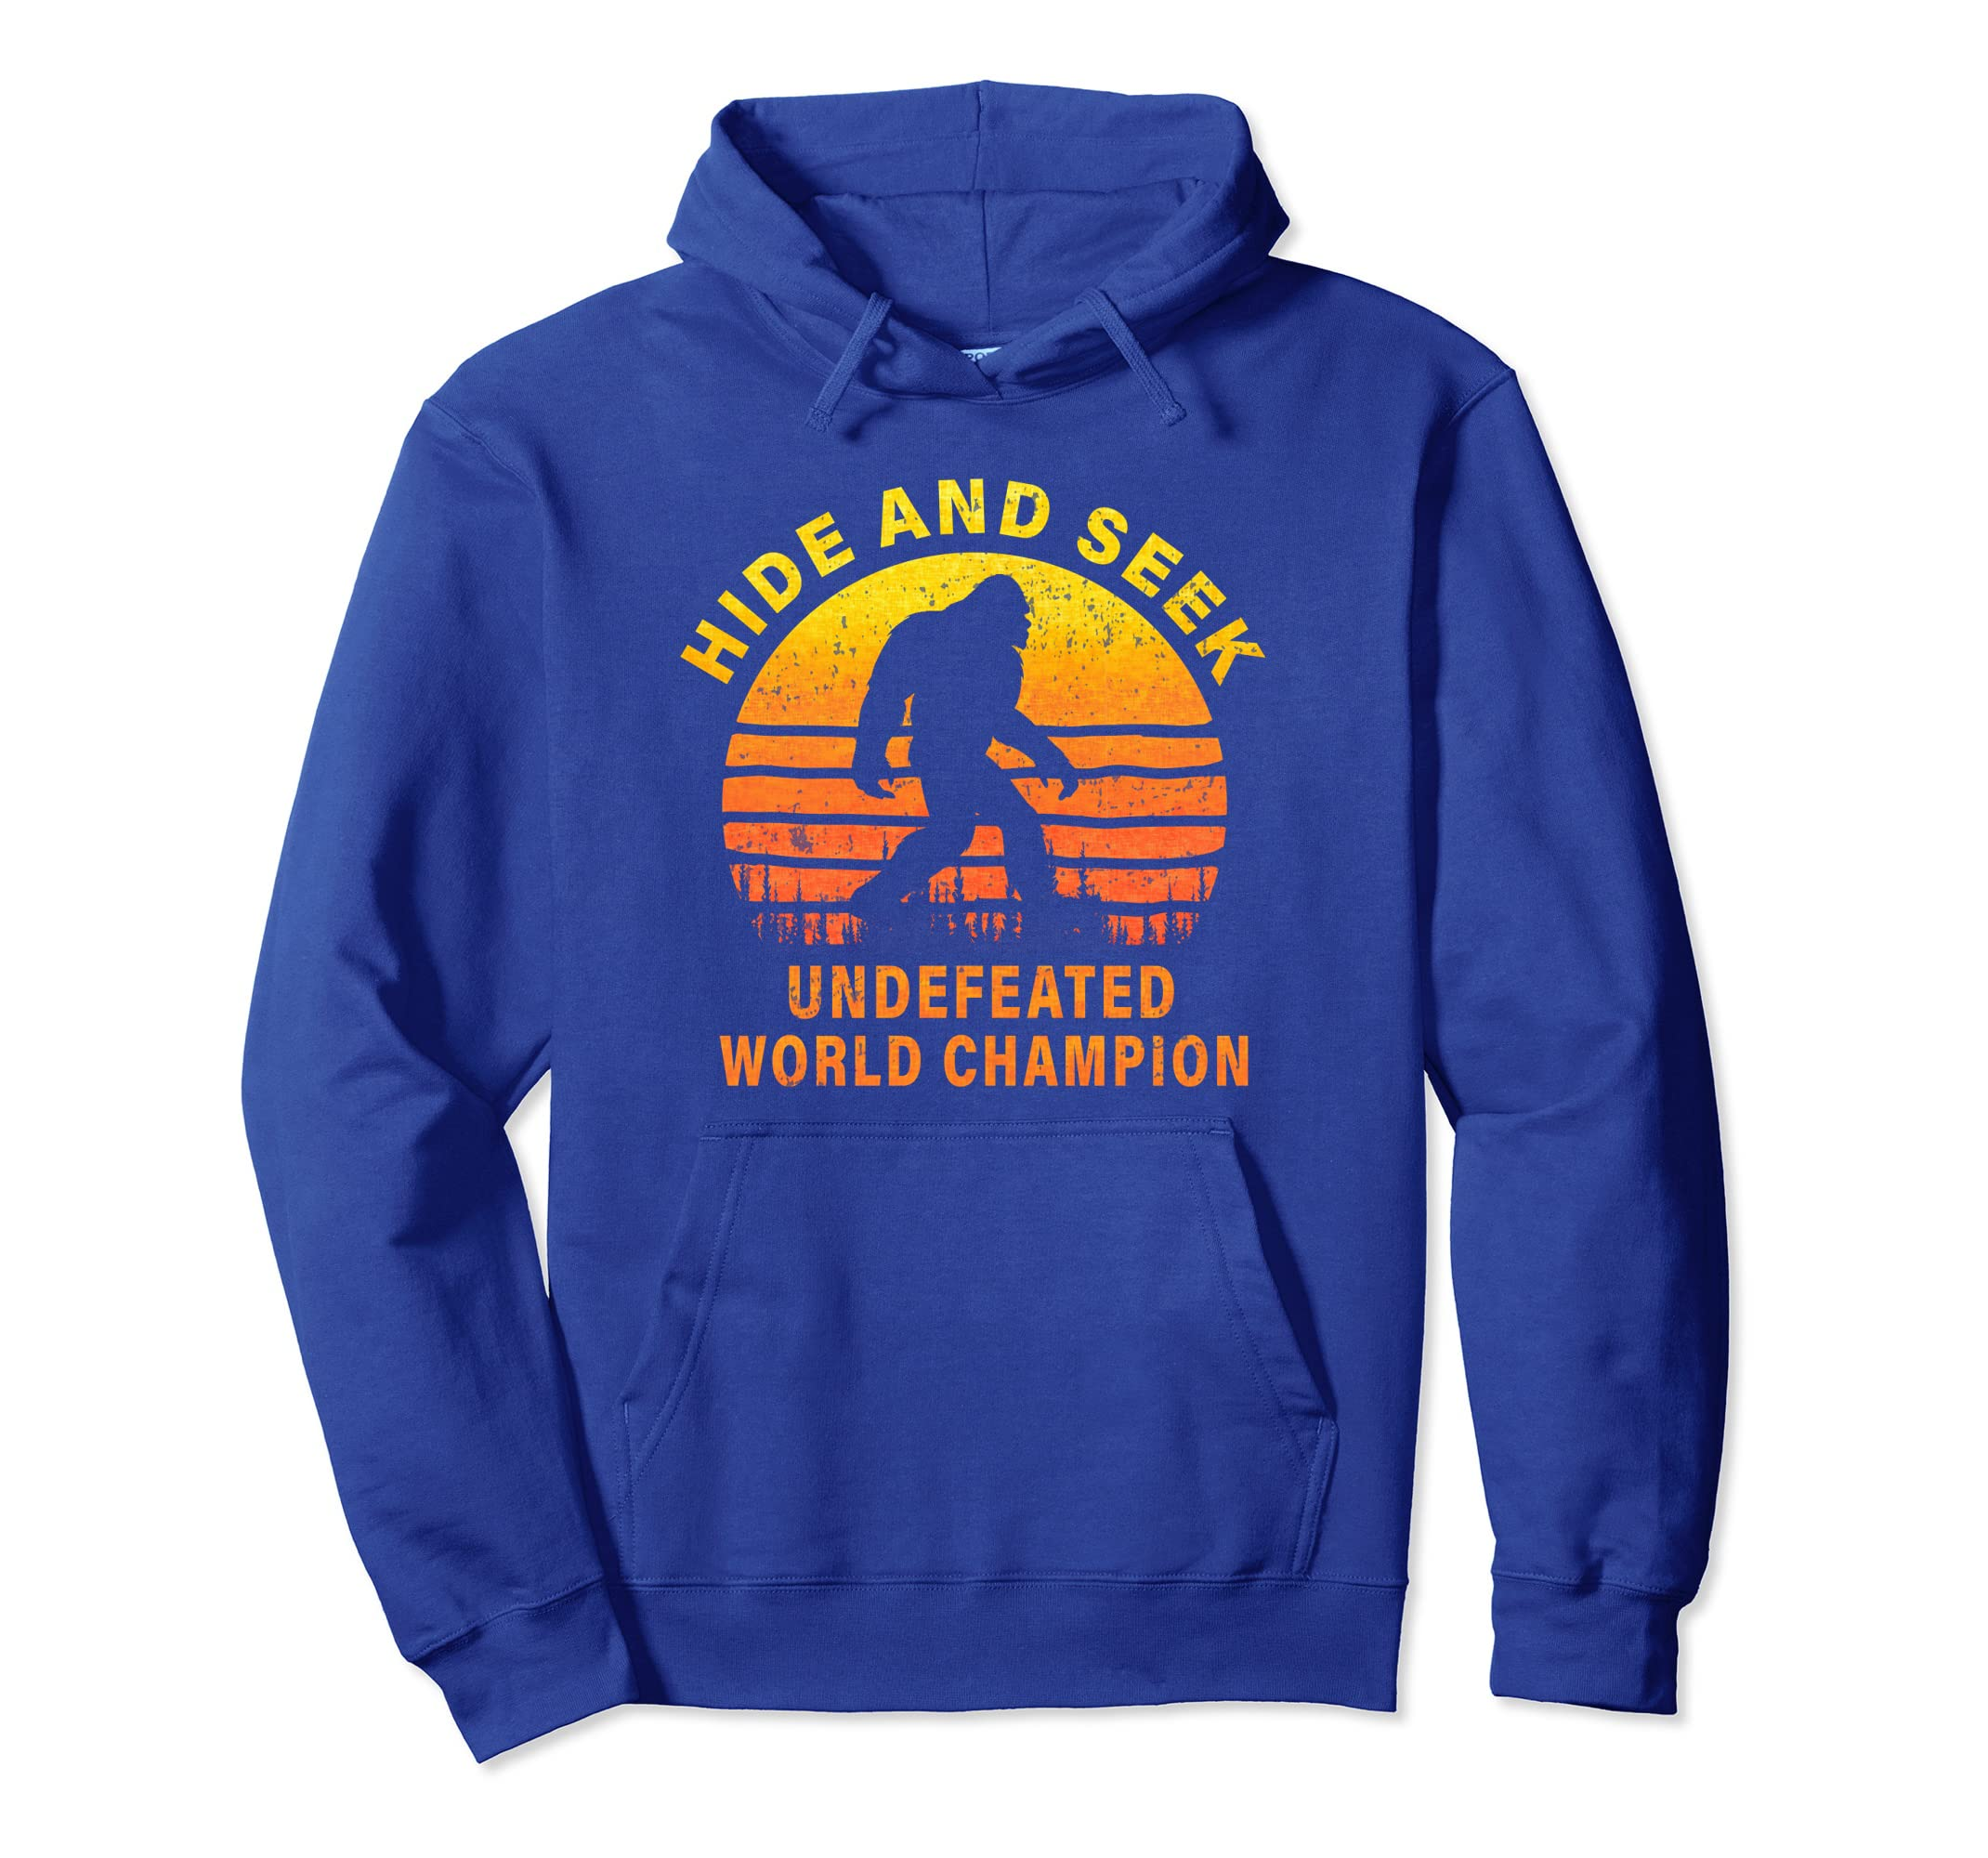 0172dcd7d Amazon.com: Undefeated Hide And Seek World Champion Bigfoot Hoodie: Clothing